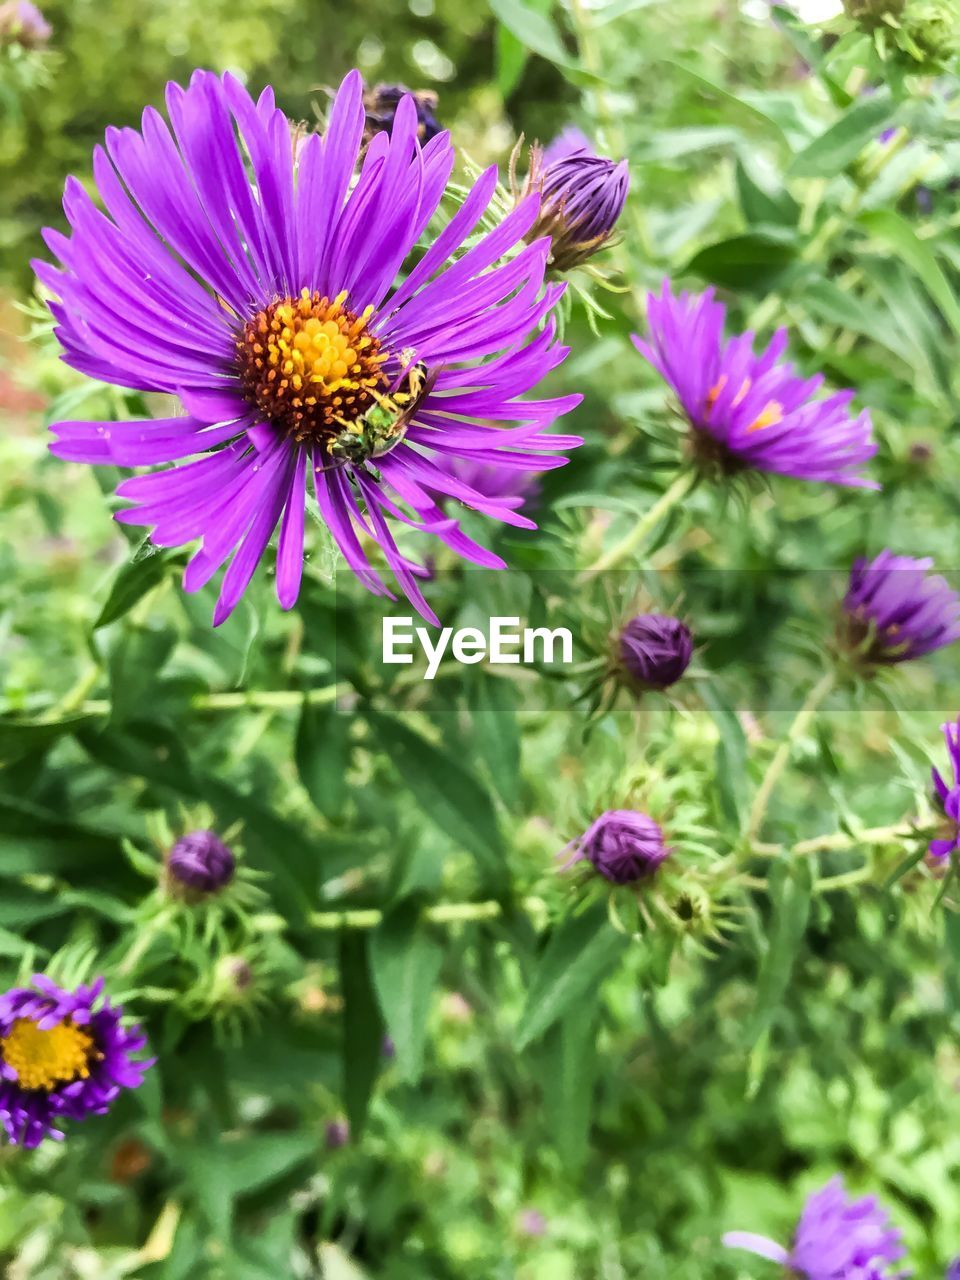 flower, fragility, growth, petal, nature, beauty in nature, purple, flower head, plant, freshness, day, no people, blooming, outdoors, green color, close-up, osteospermum, eastern purple coneflower